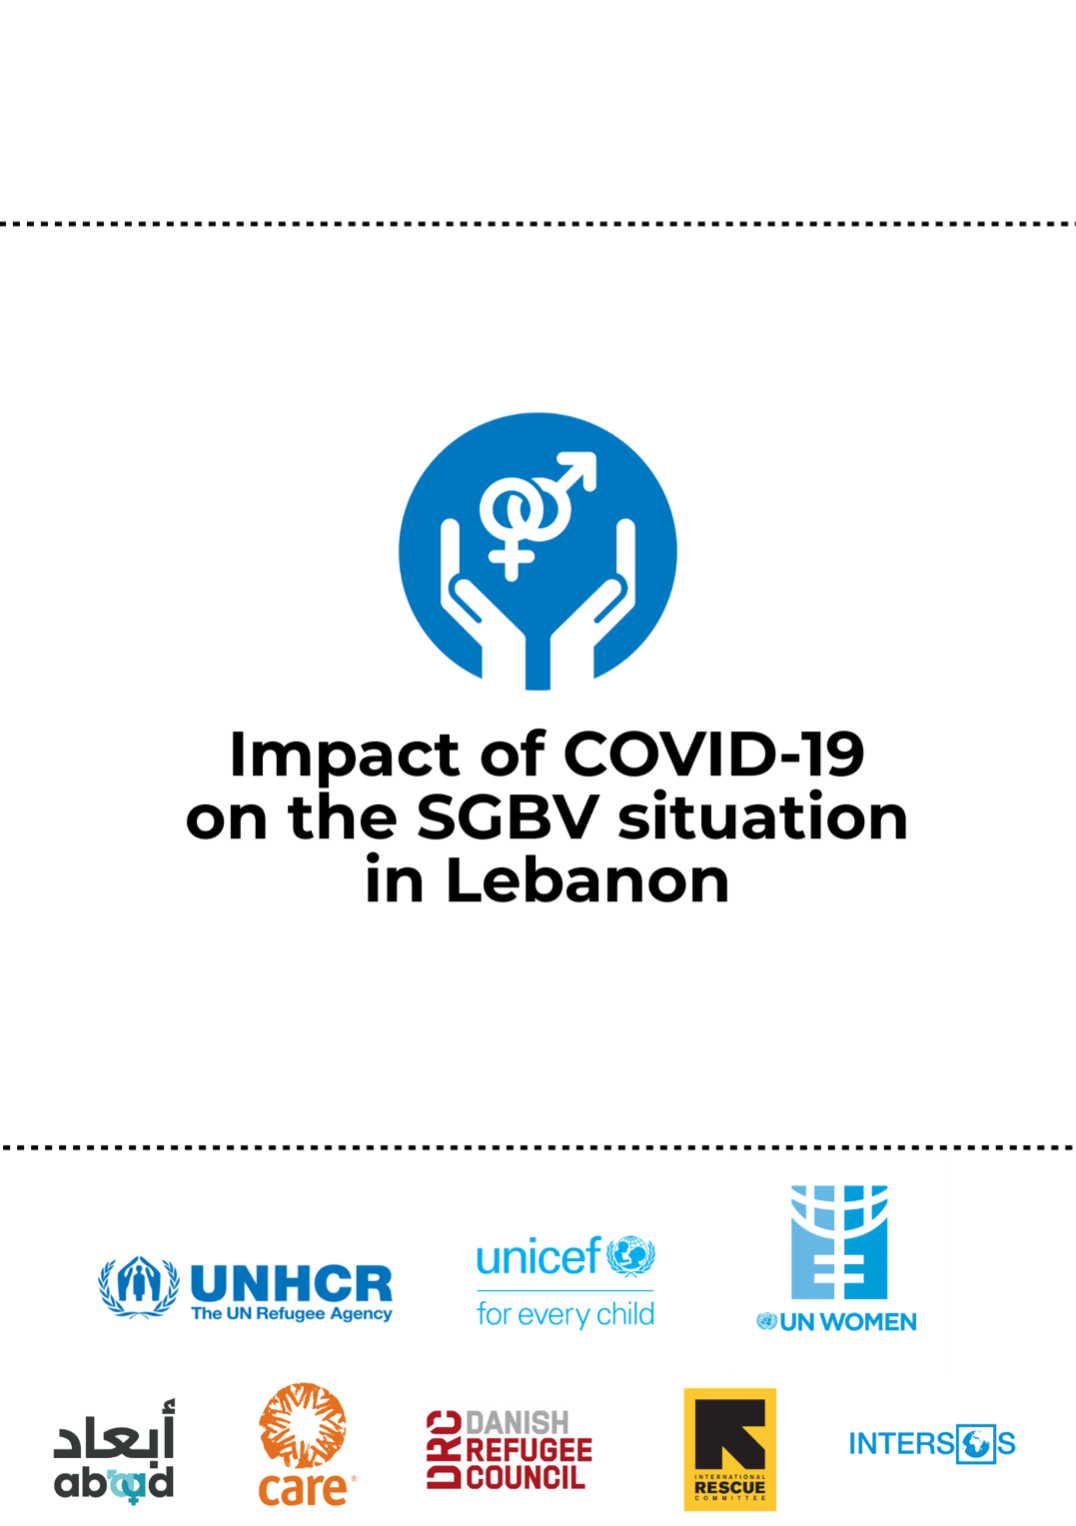 Impact of COVID-19 on SGBV Situation in Lebanon